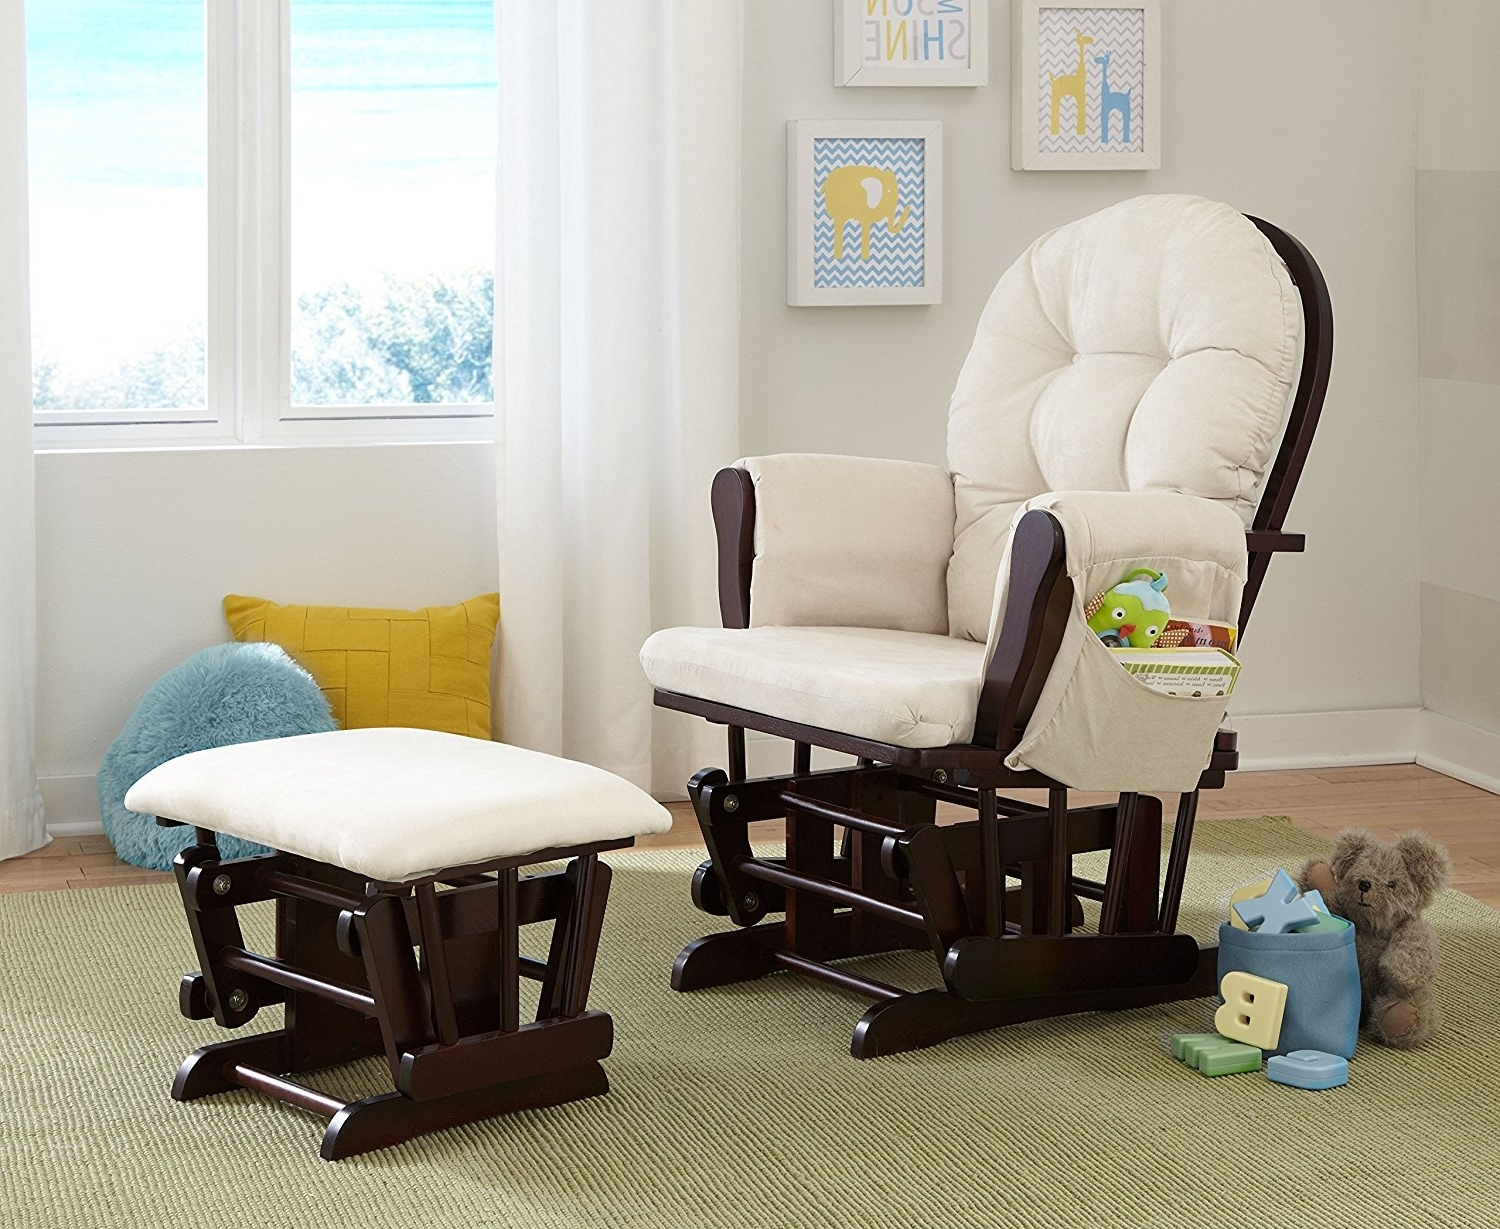 Living Room Furniture : Glider Rocking Chair Amazon Glider Rocking Regarding 2019 Amazon Rocking Chairs (View 20 of 20)